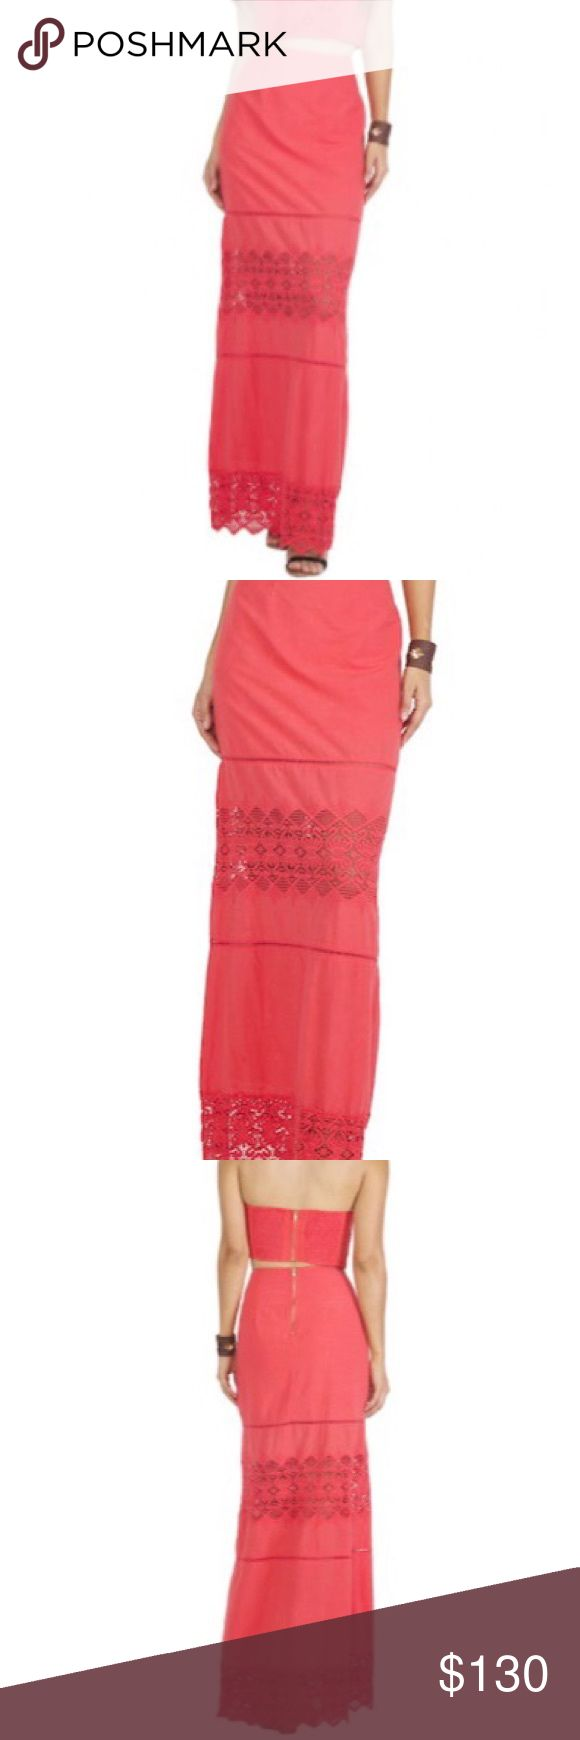 🆕 Nightcap - Diamond Lace Maxi Skirt - Guava/Red 🆕 Nightcap - Diamond Lace Maxi Skirt - Color: Guava/Red - Size: 1/Small. From Shopplanetblue.com. BRAND NEW / NEVER  WORN / WITH TAG. Bundle two items for 10% off. Offers Welcome :) Nightcap Skirts Maxi